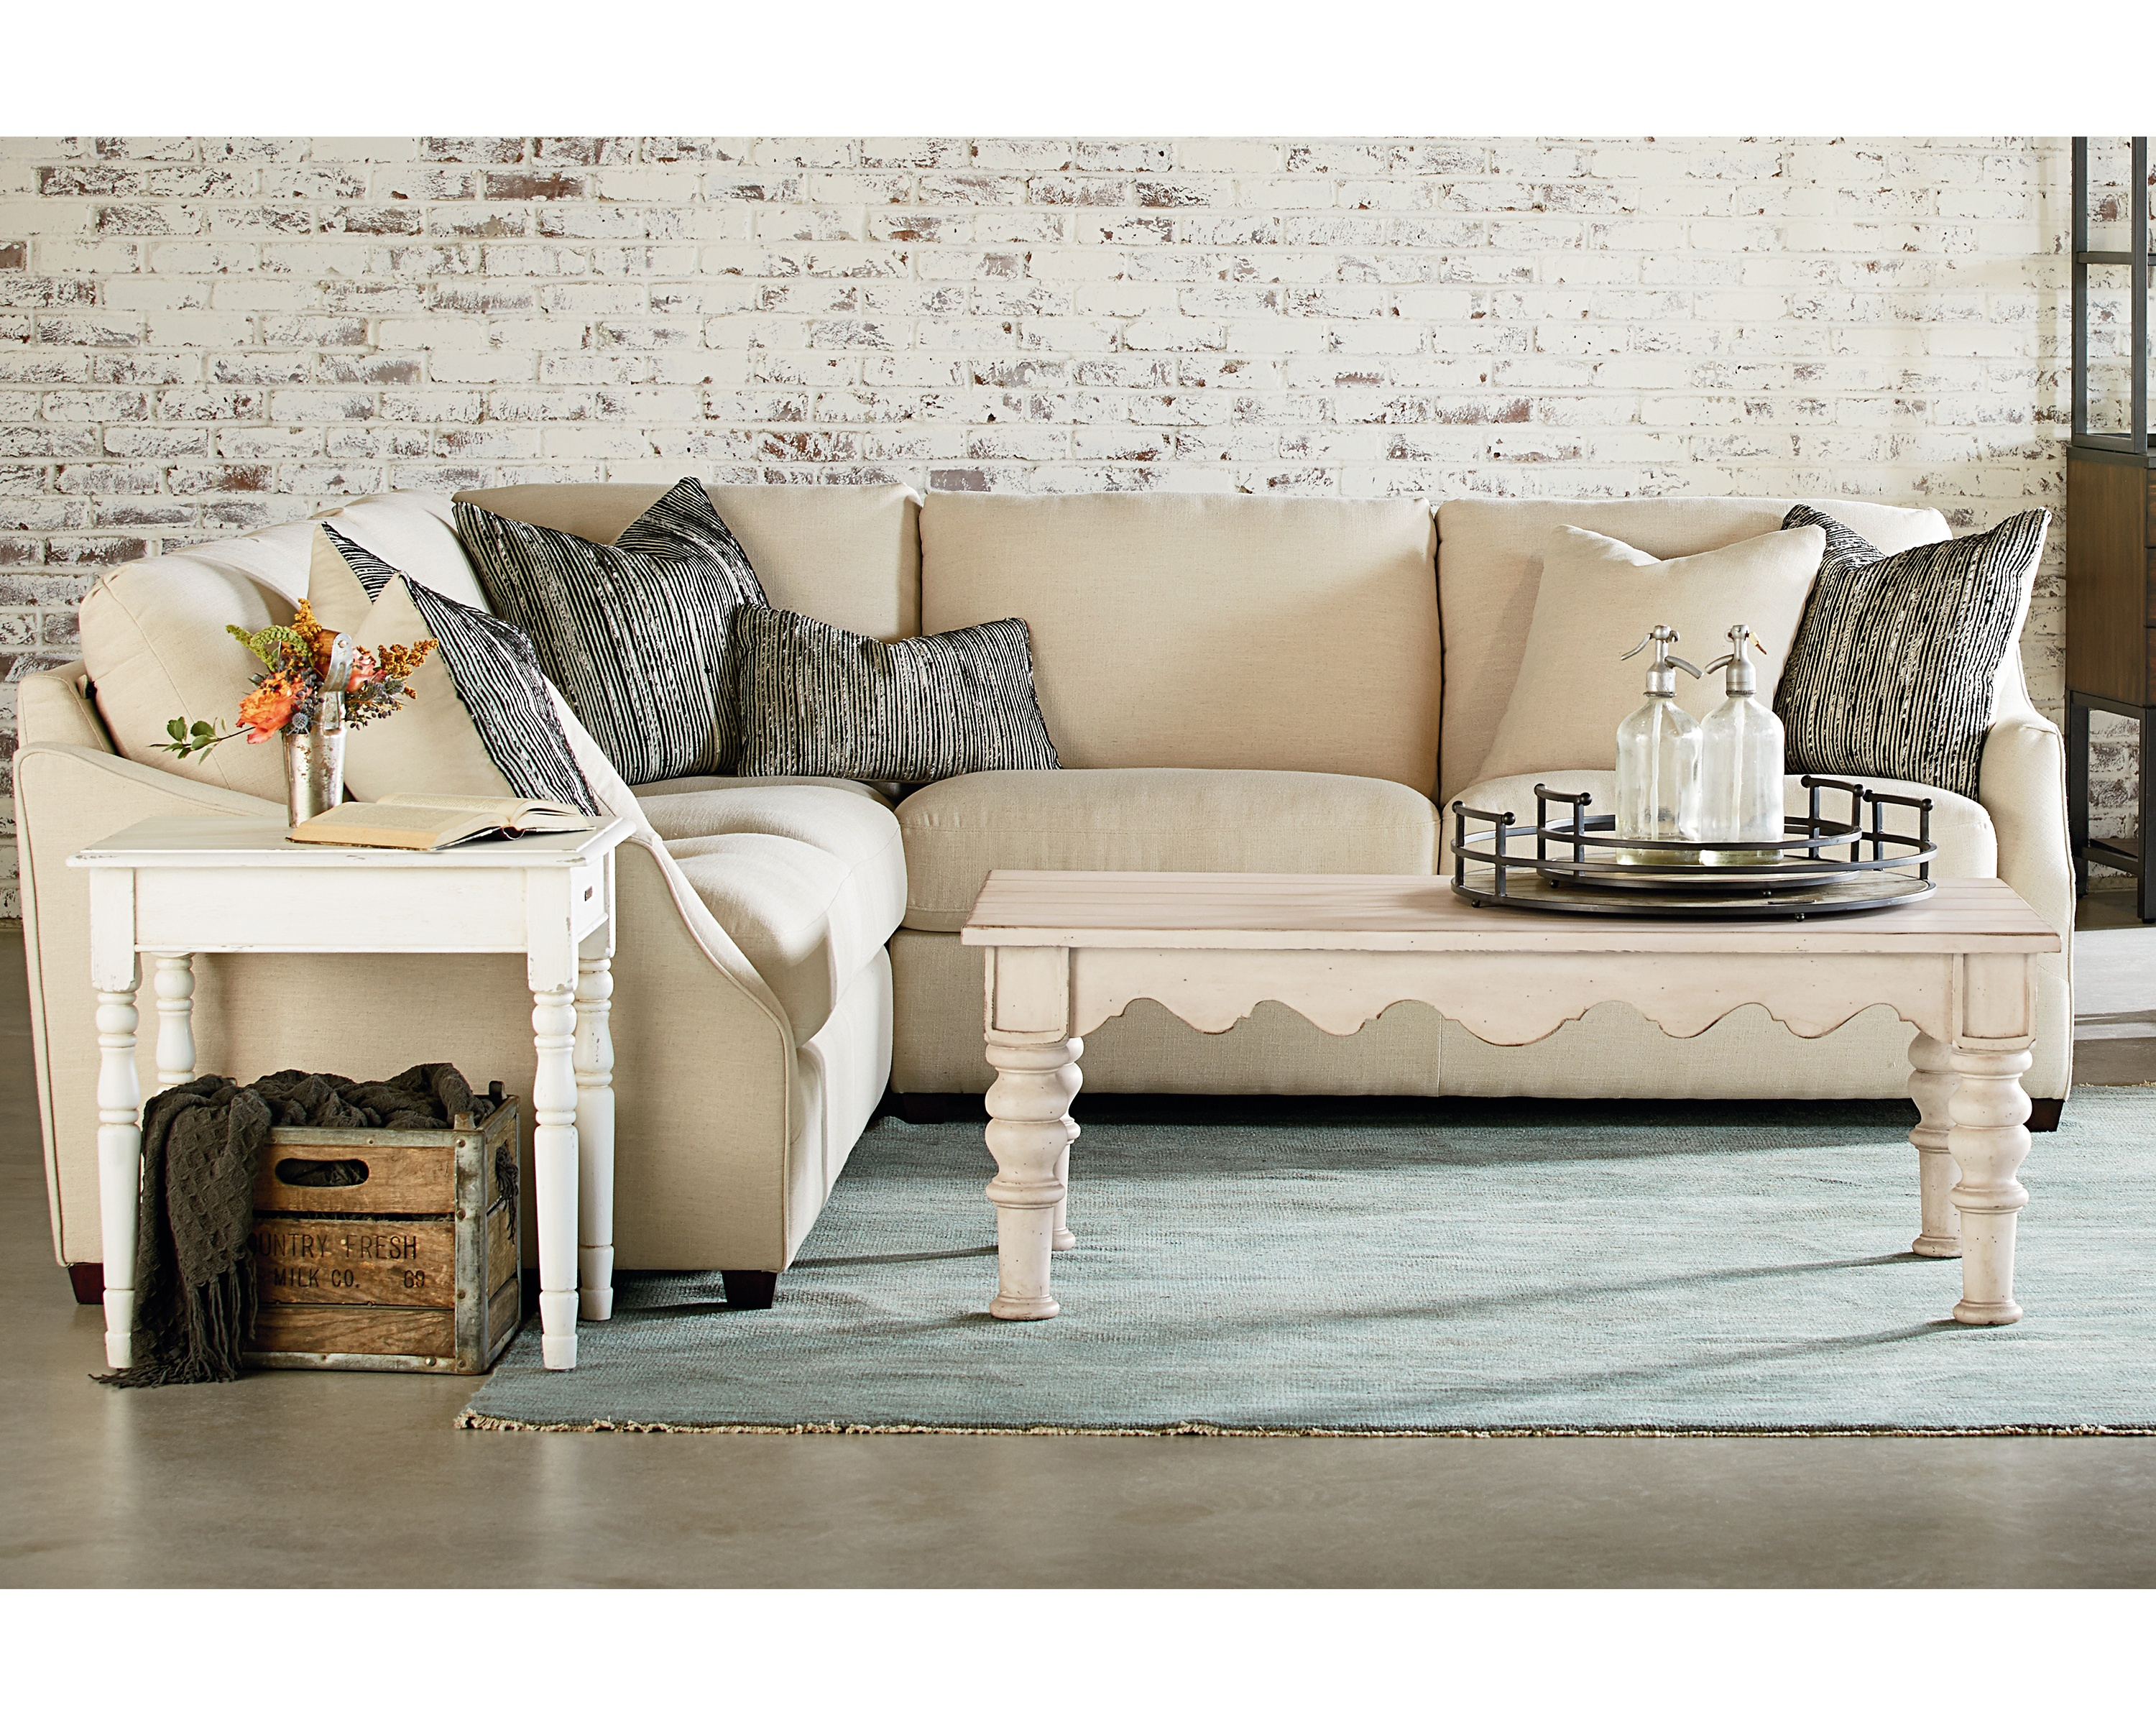 Homestead Sectional – Magnolia Home Inside Magnolia Home Homestead Sofa Chairs By Joanna Gaines (Image 6 of 25)